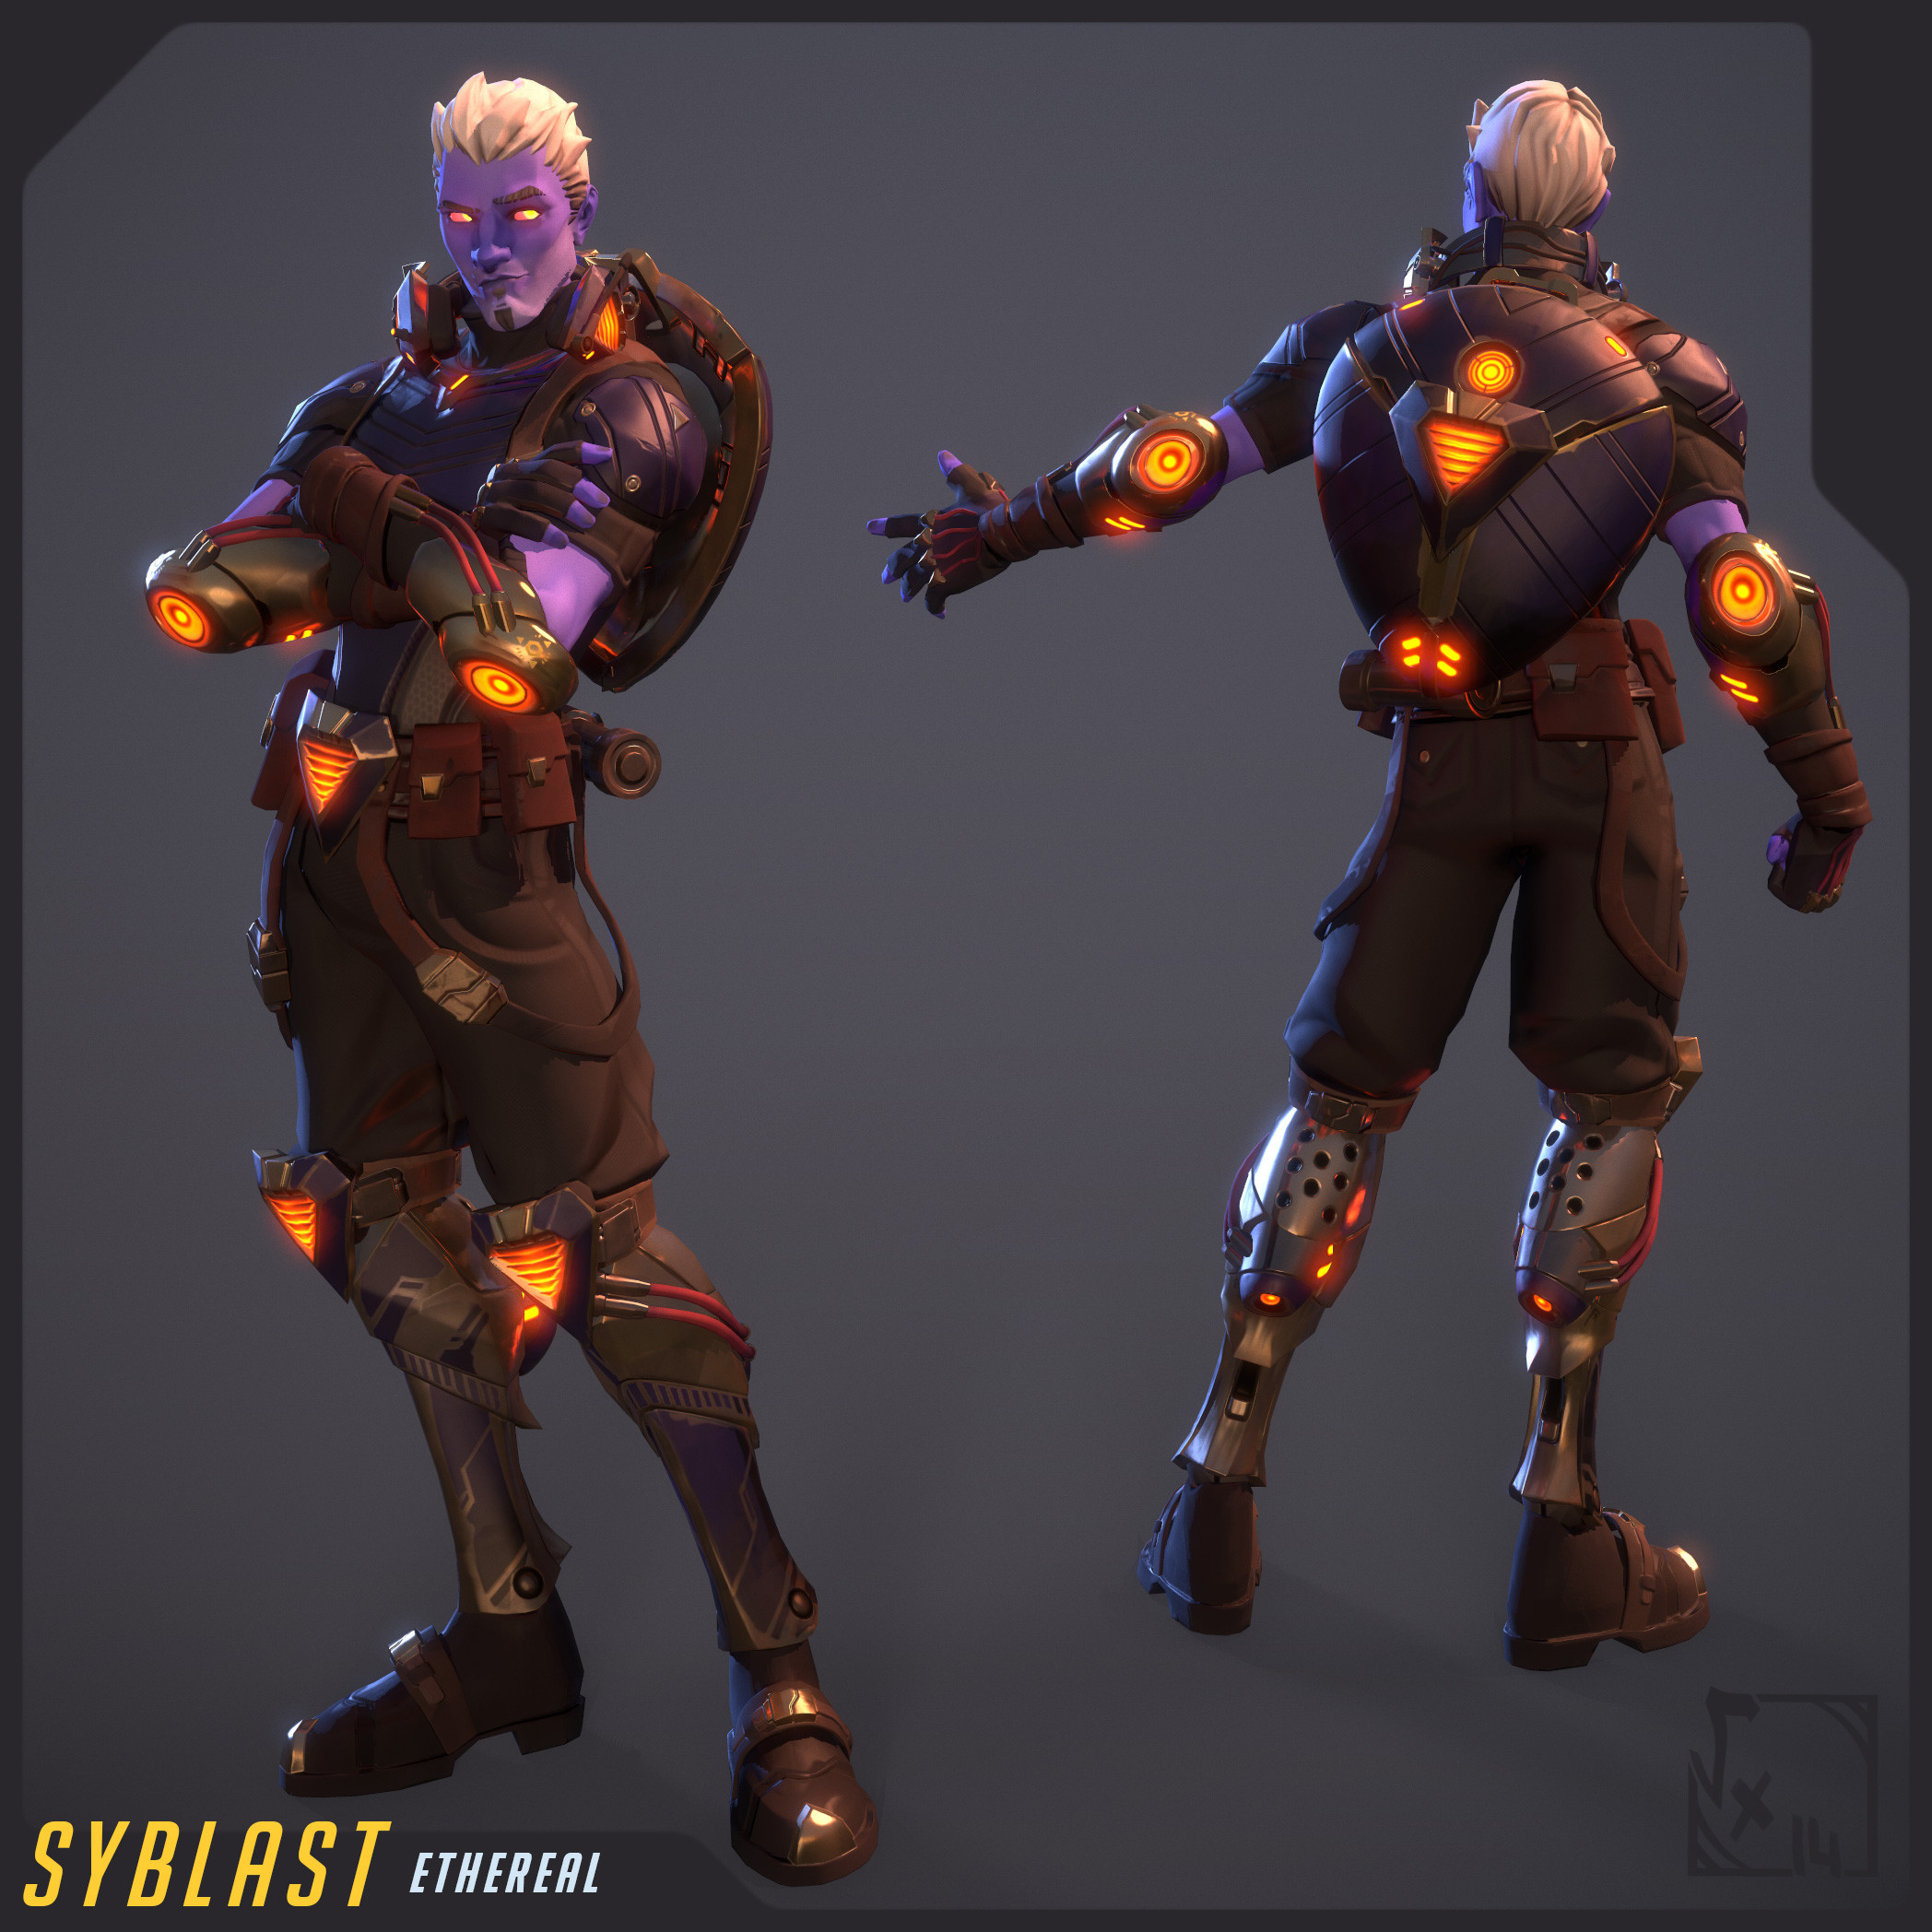 Syblast - Ethereal skin - fully textured with 3D-Coat and rigged/skinned on Akeytsu